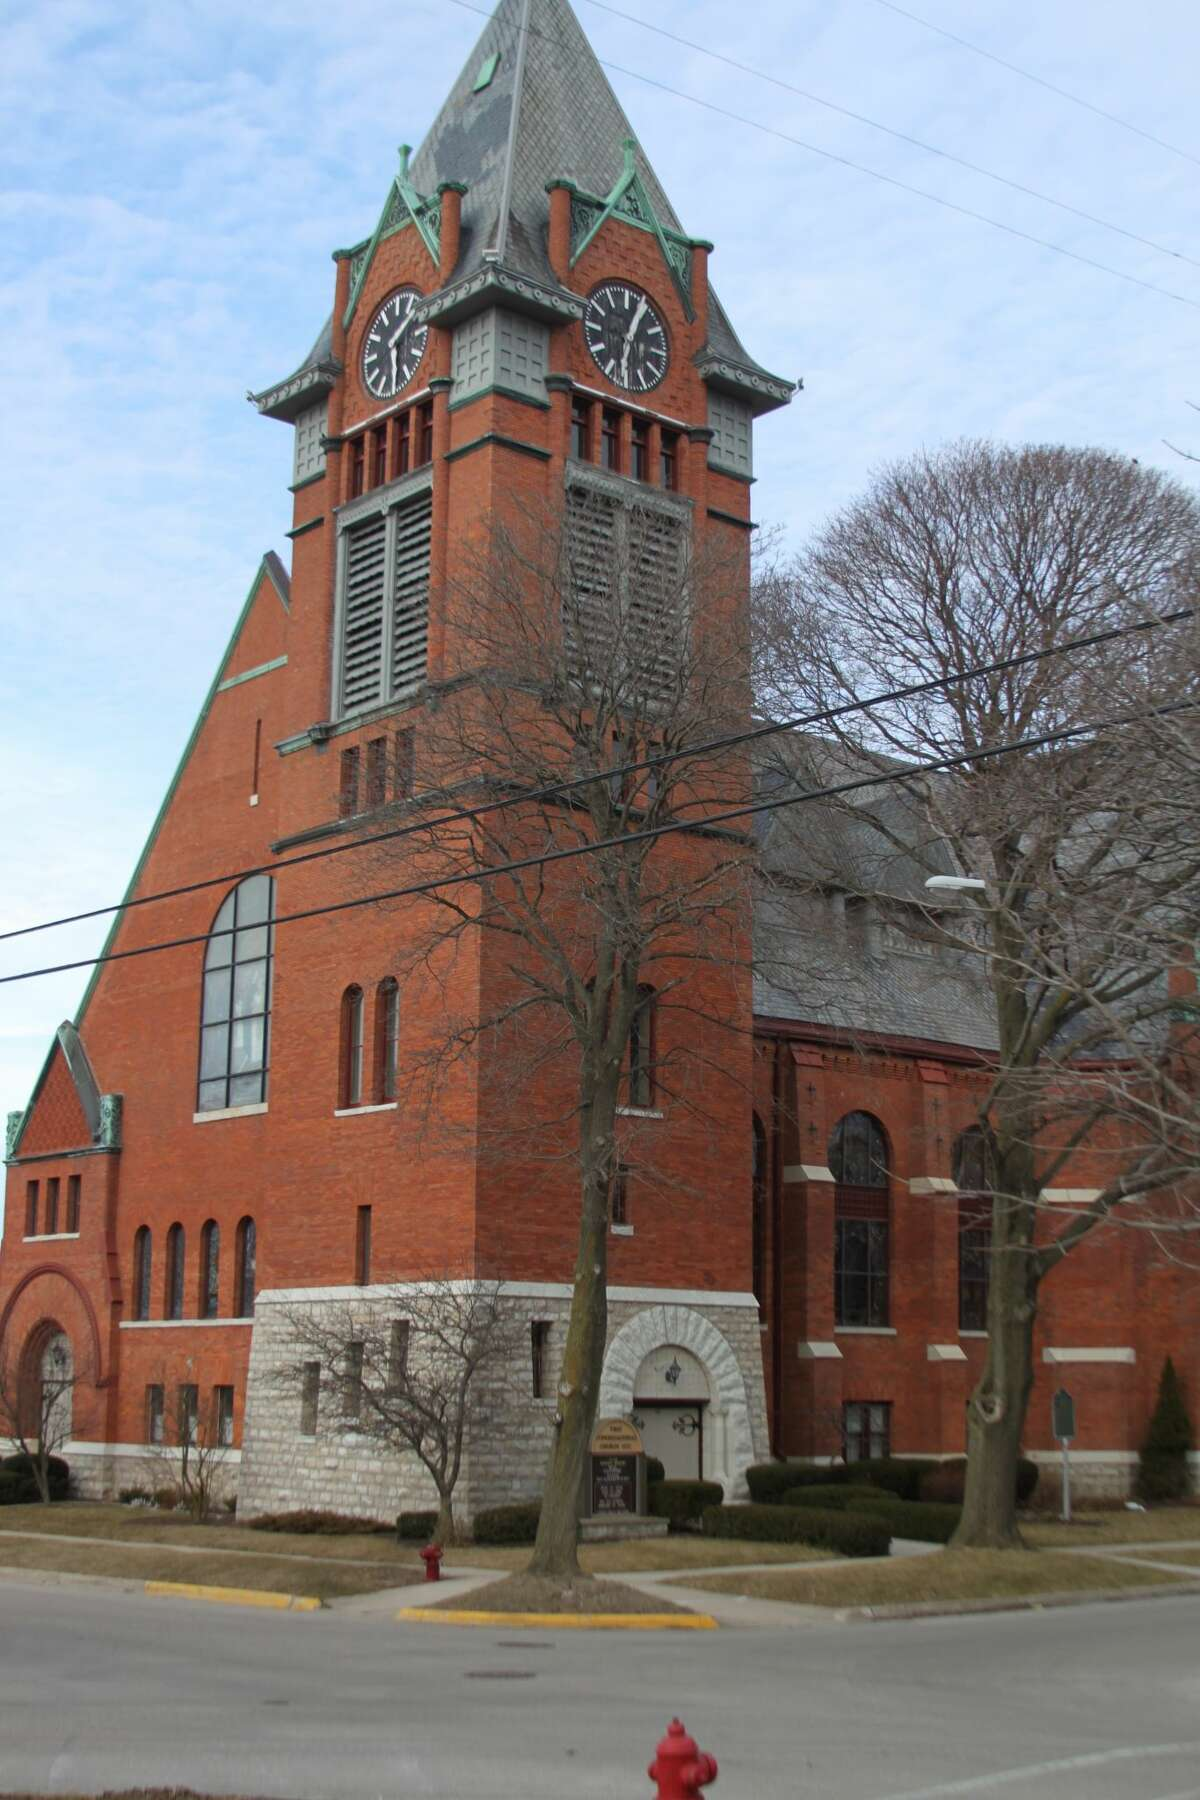 The First Congregational United Church of Christ of Manistee recently approved a statement which reaffirms the church's stance on welcoming the LGBTQ community and members of other marginalized groups.